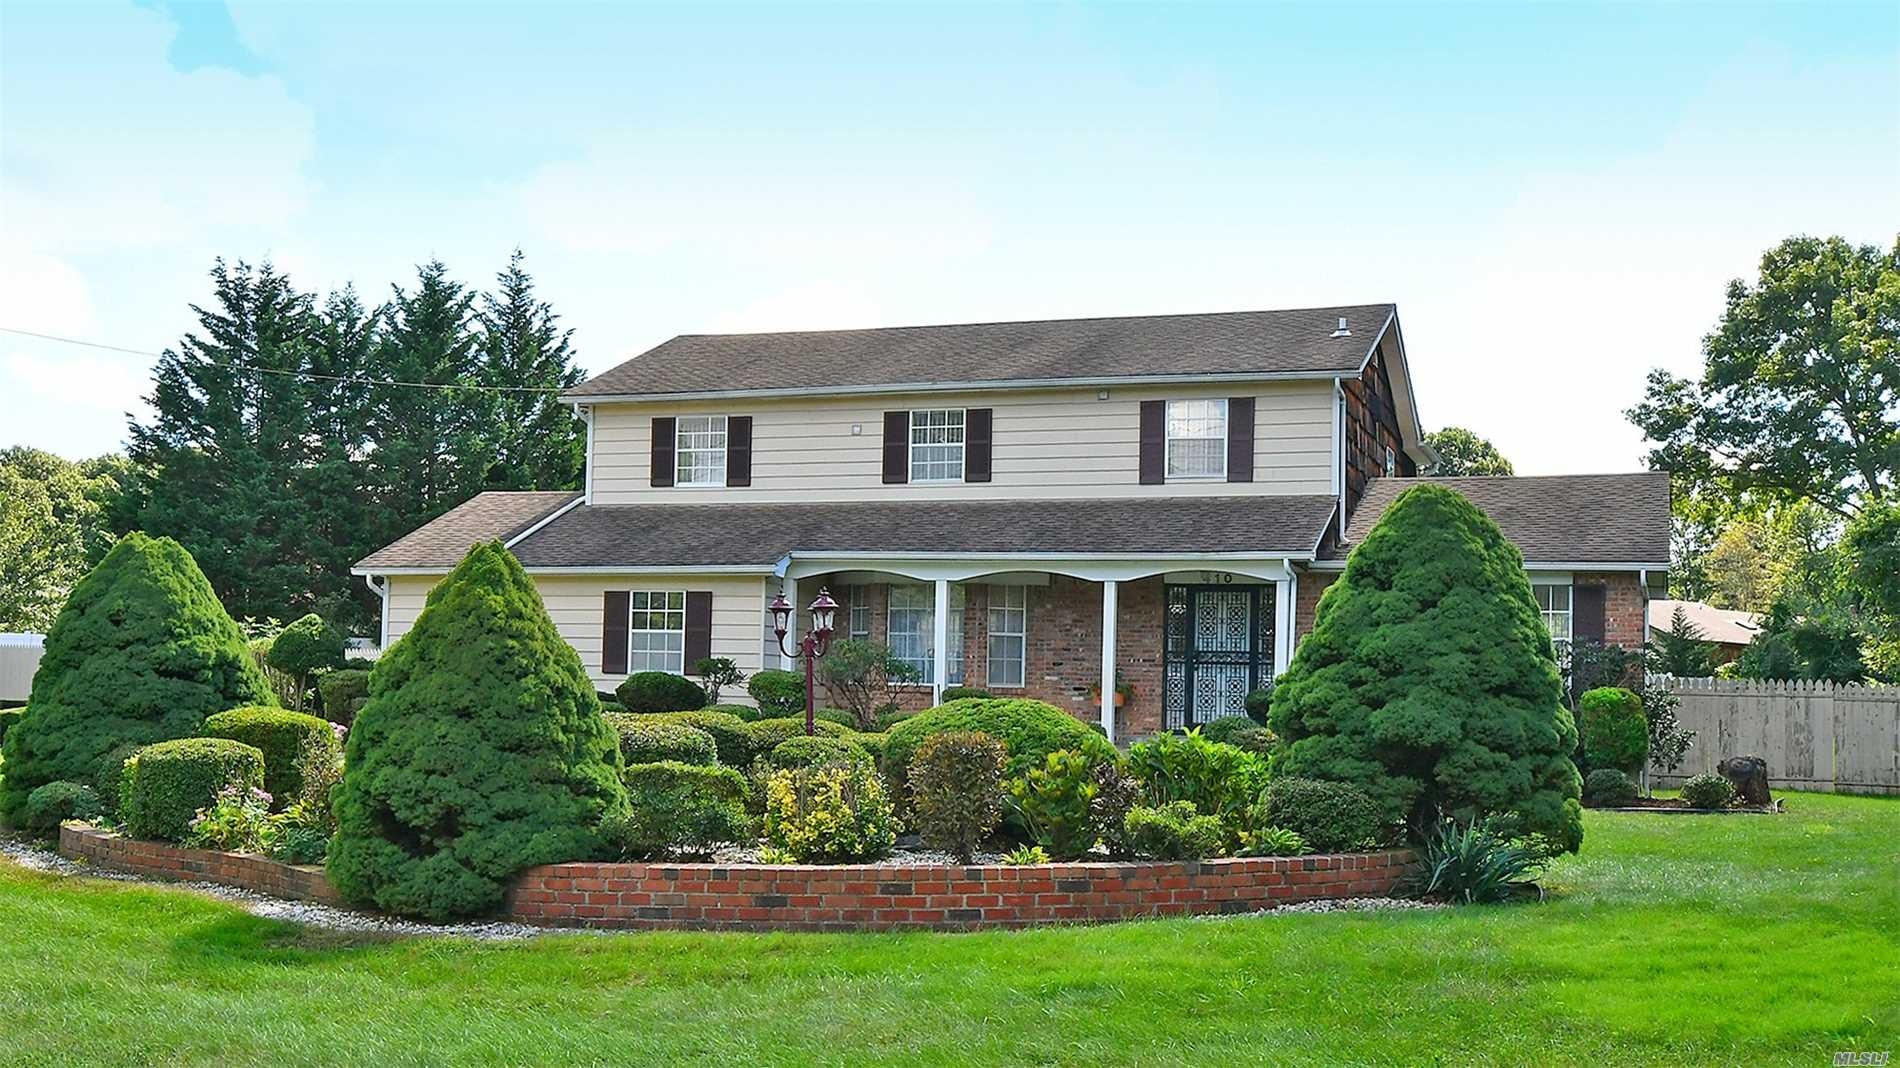 Photo of home for sale at 410 Old Country Rd, Melville NY